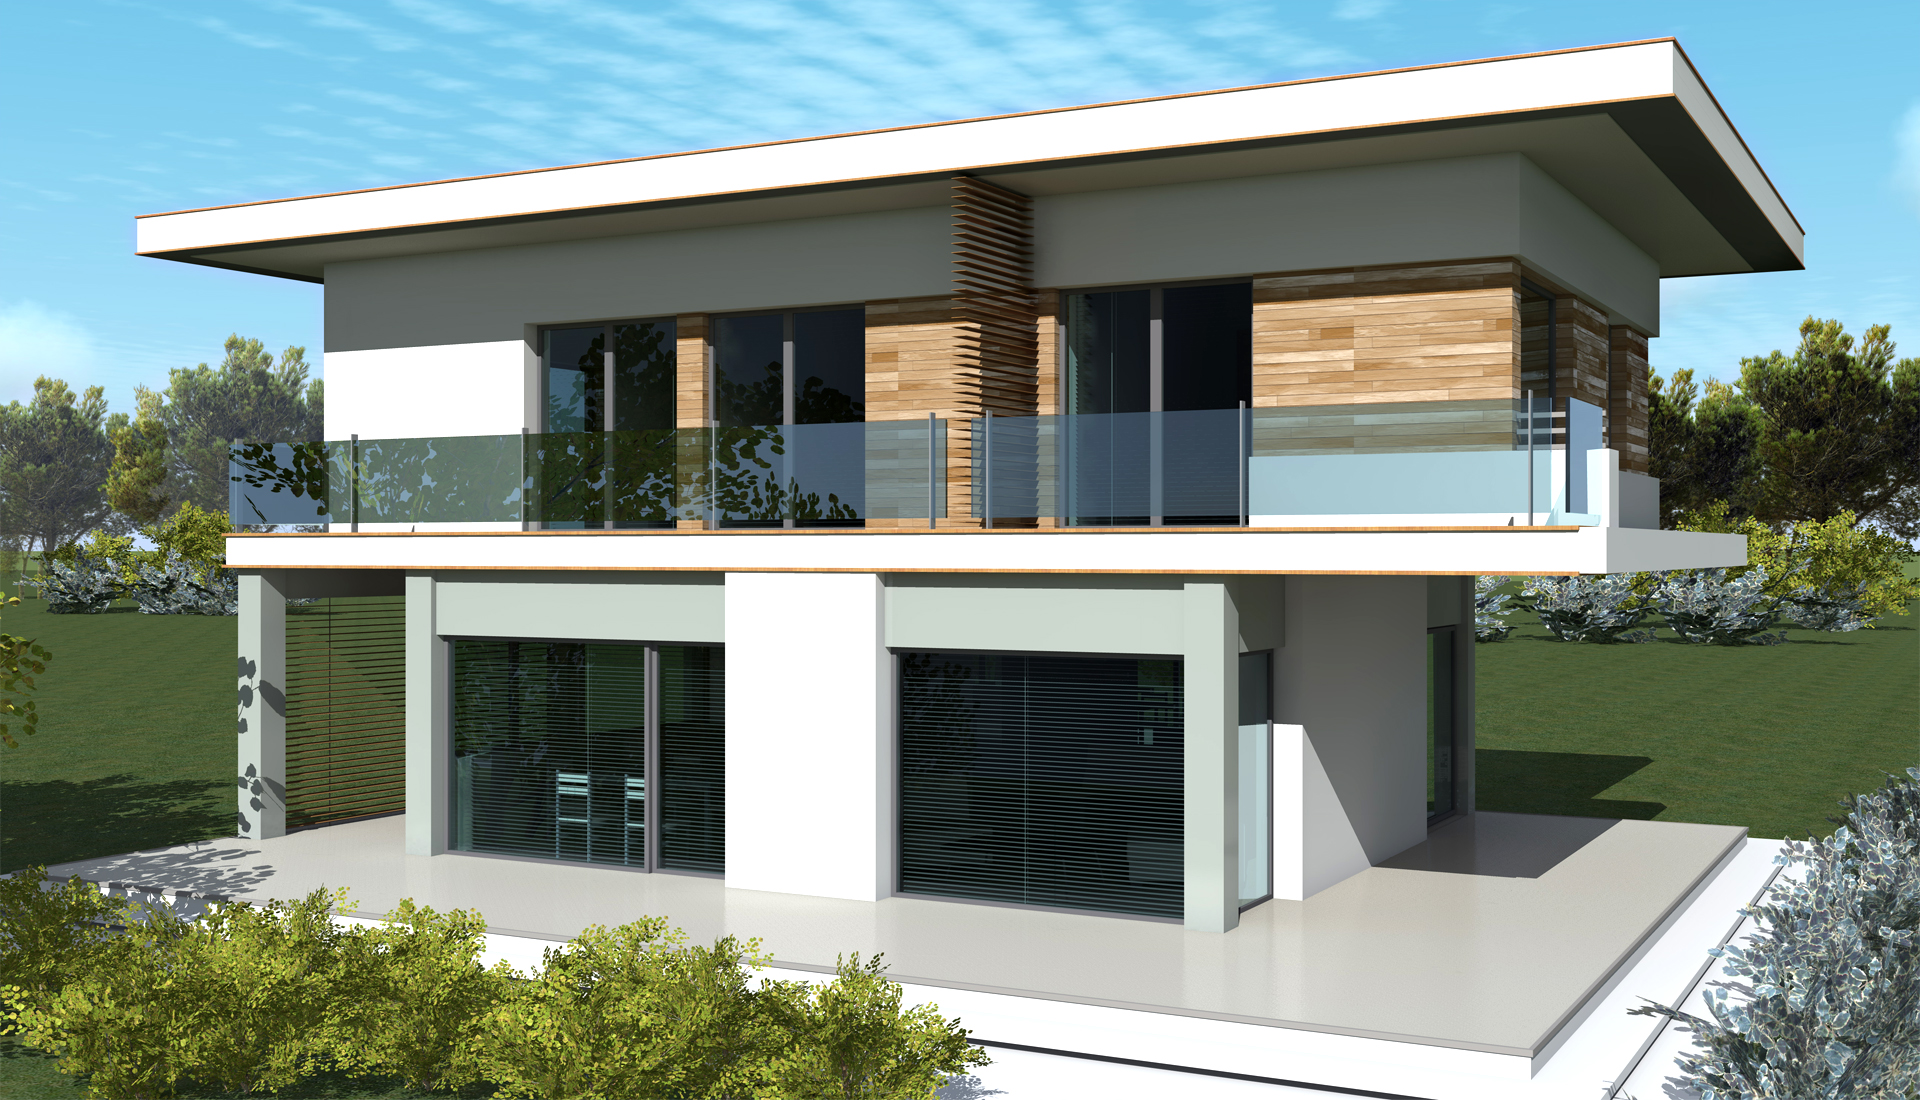 Plan maison contemporaine is 10 150m2 for Maison etage moderne